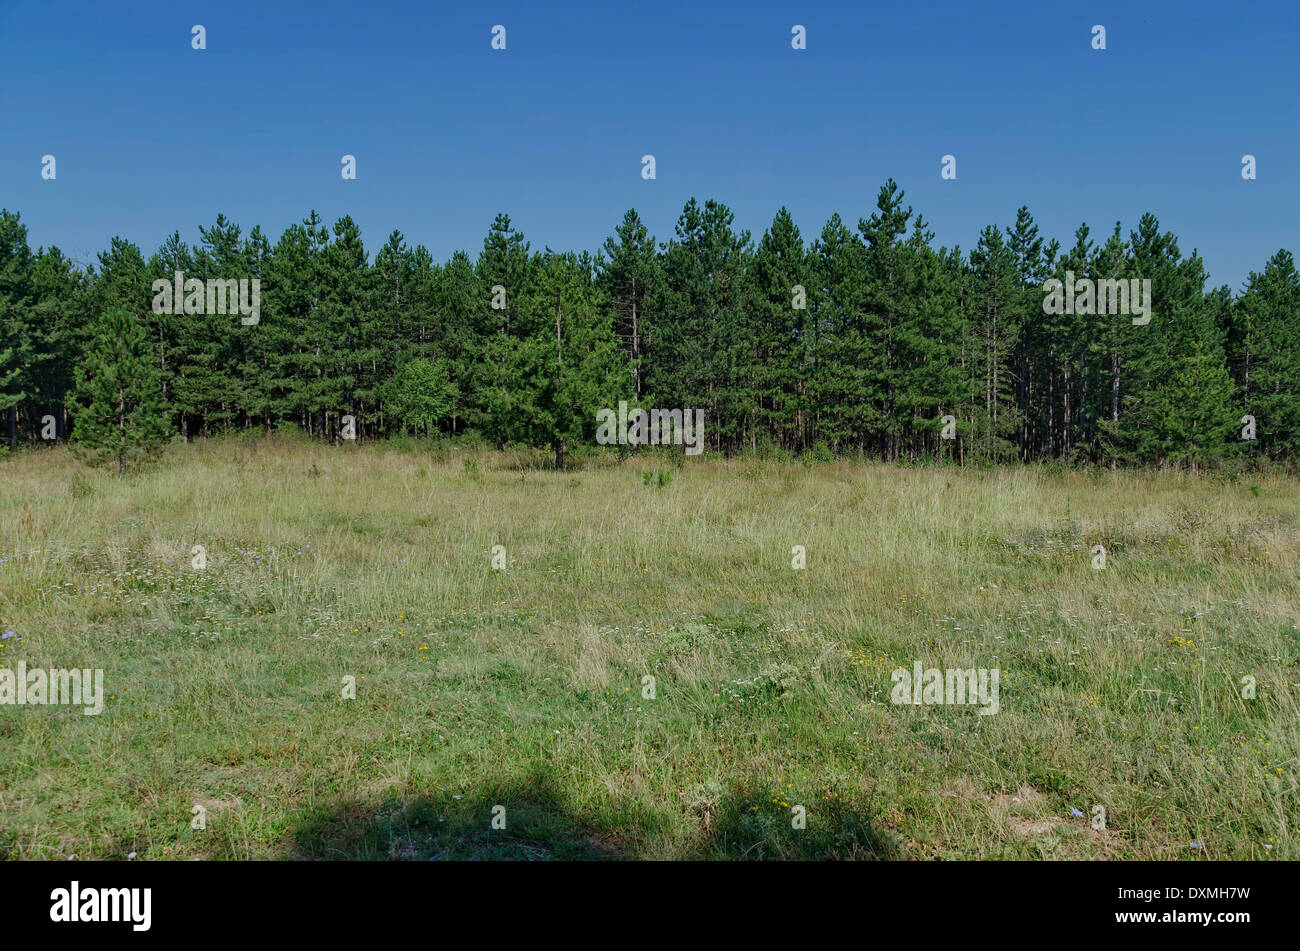 Conifer forest in Balkan mountain, Bulgaria - Stock Image